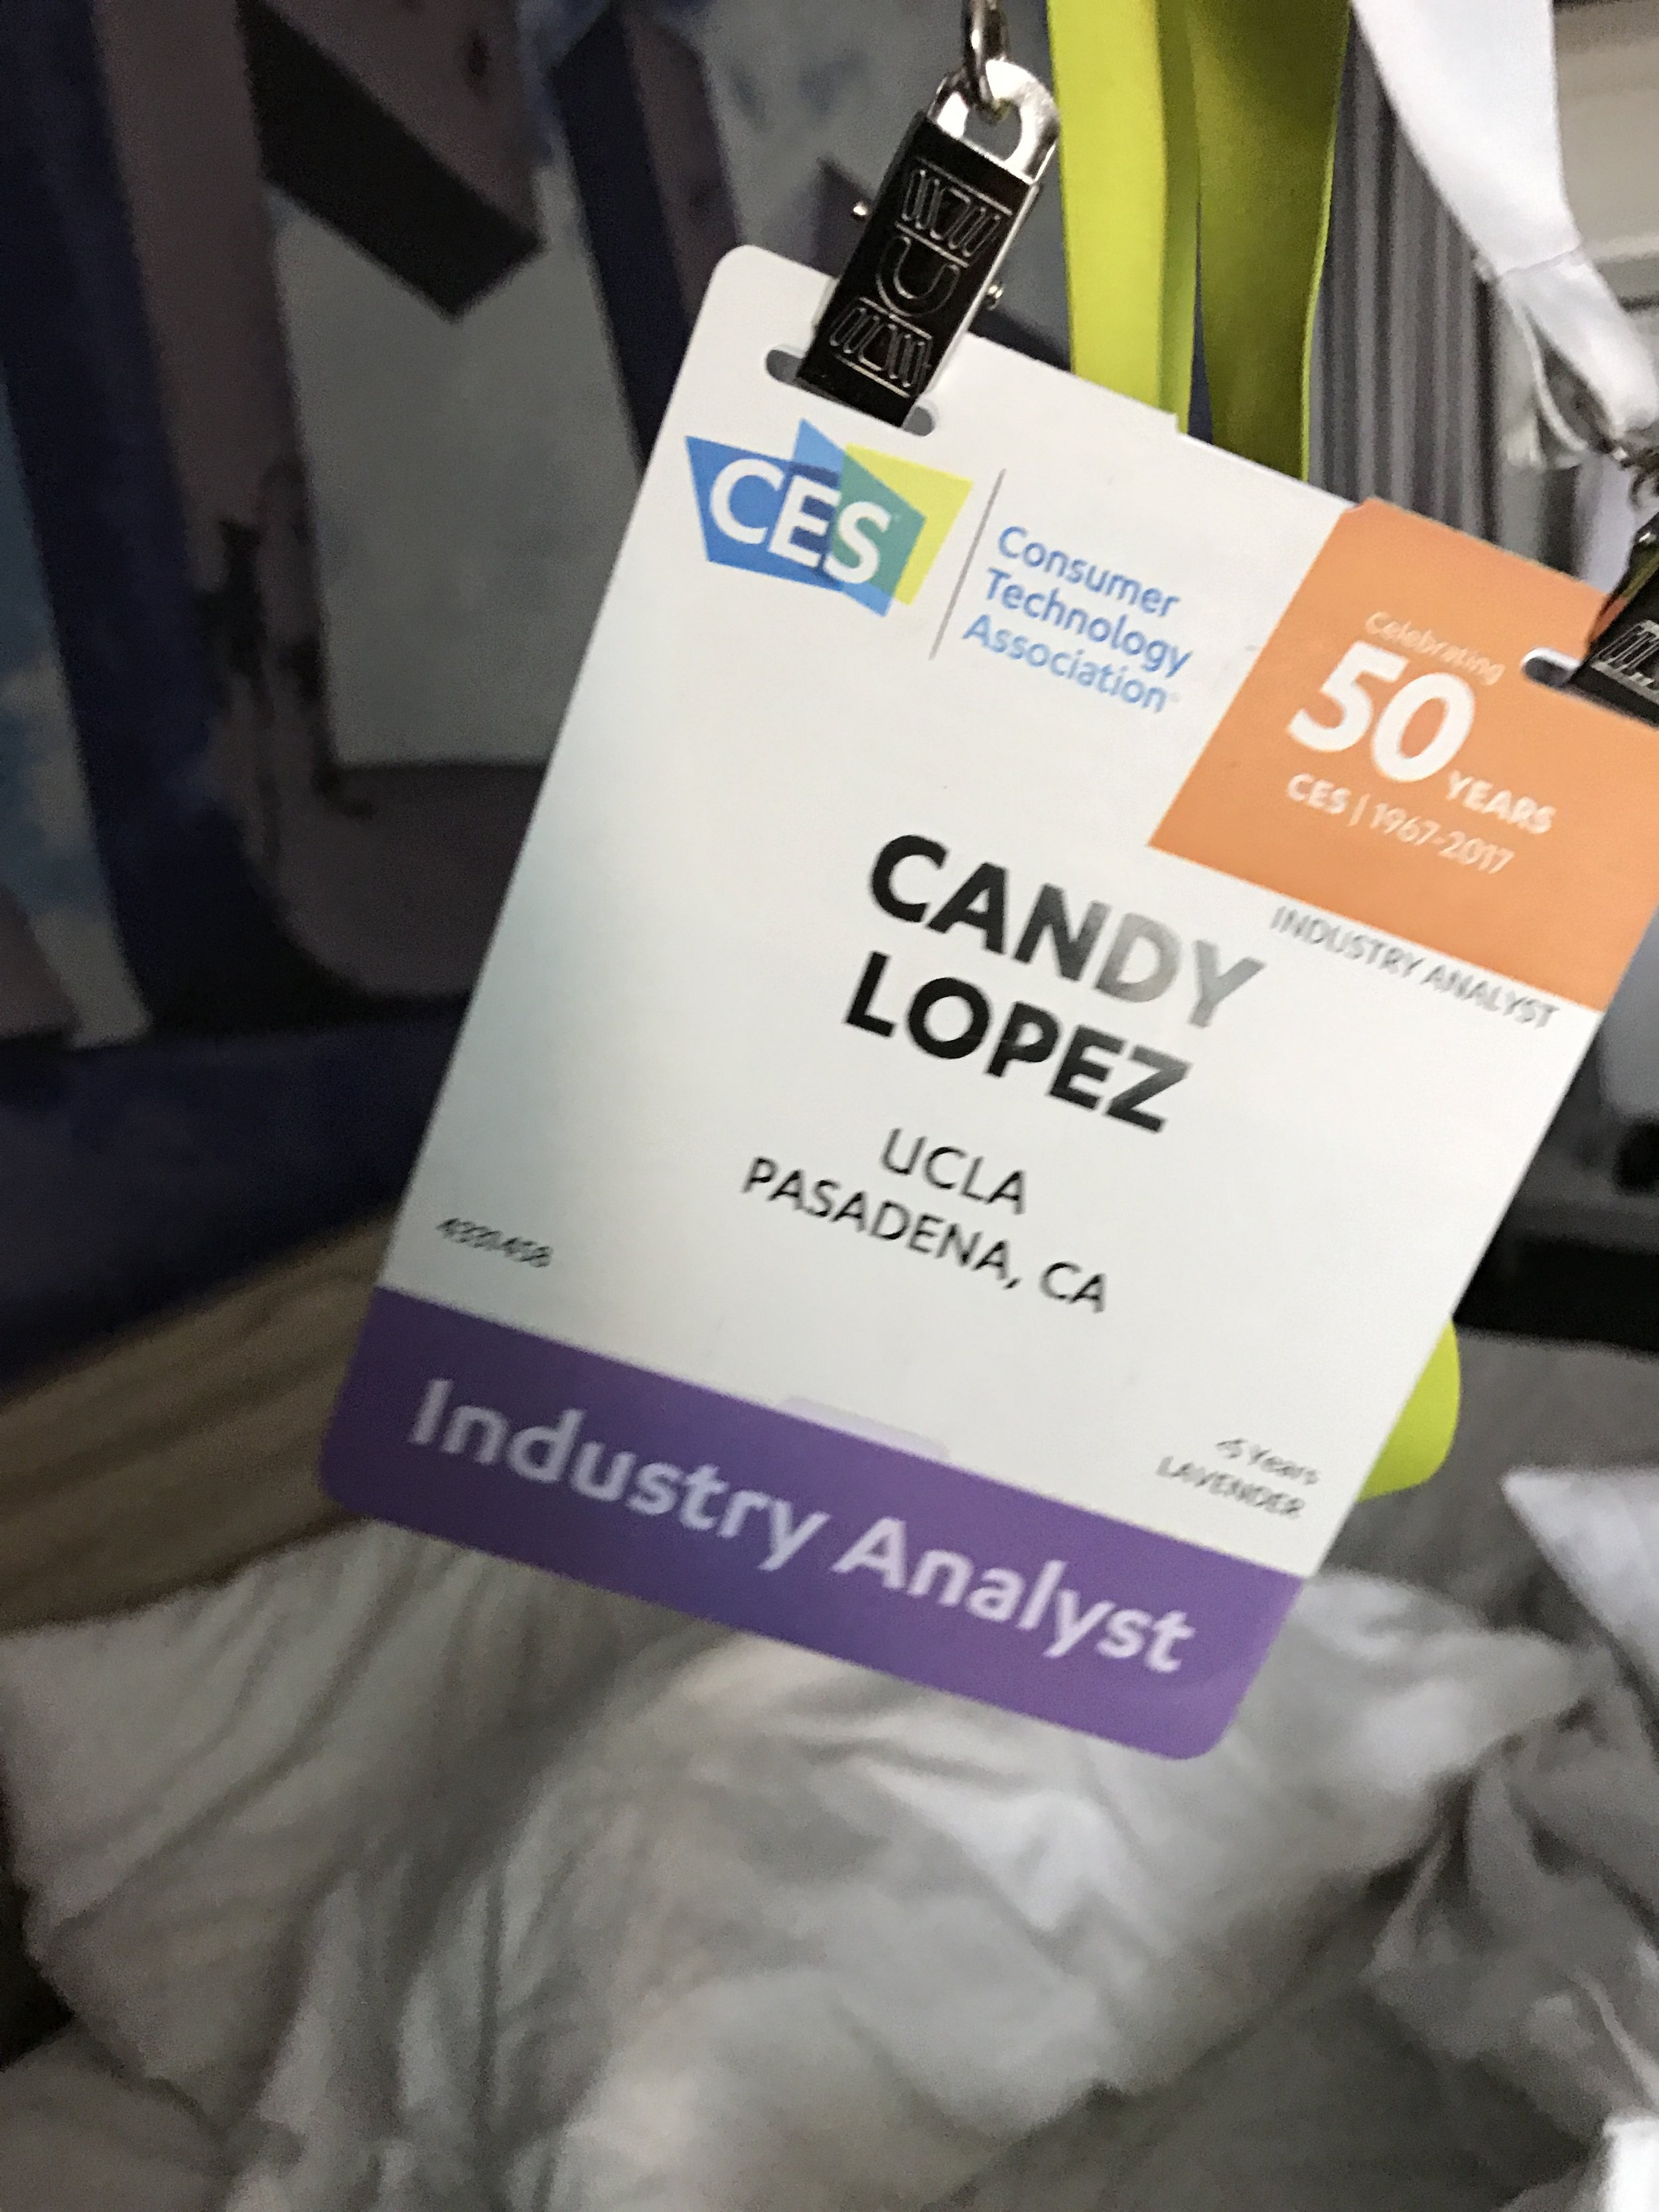 OMG my first Analyst Badge...so excited.